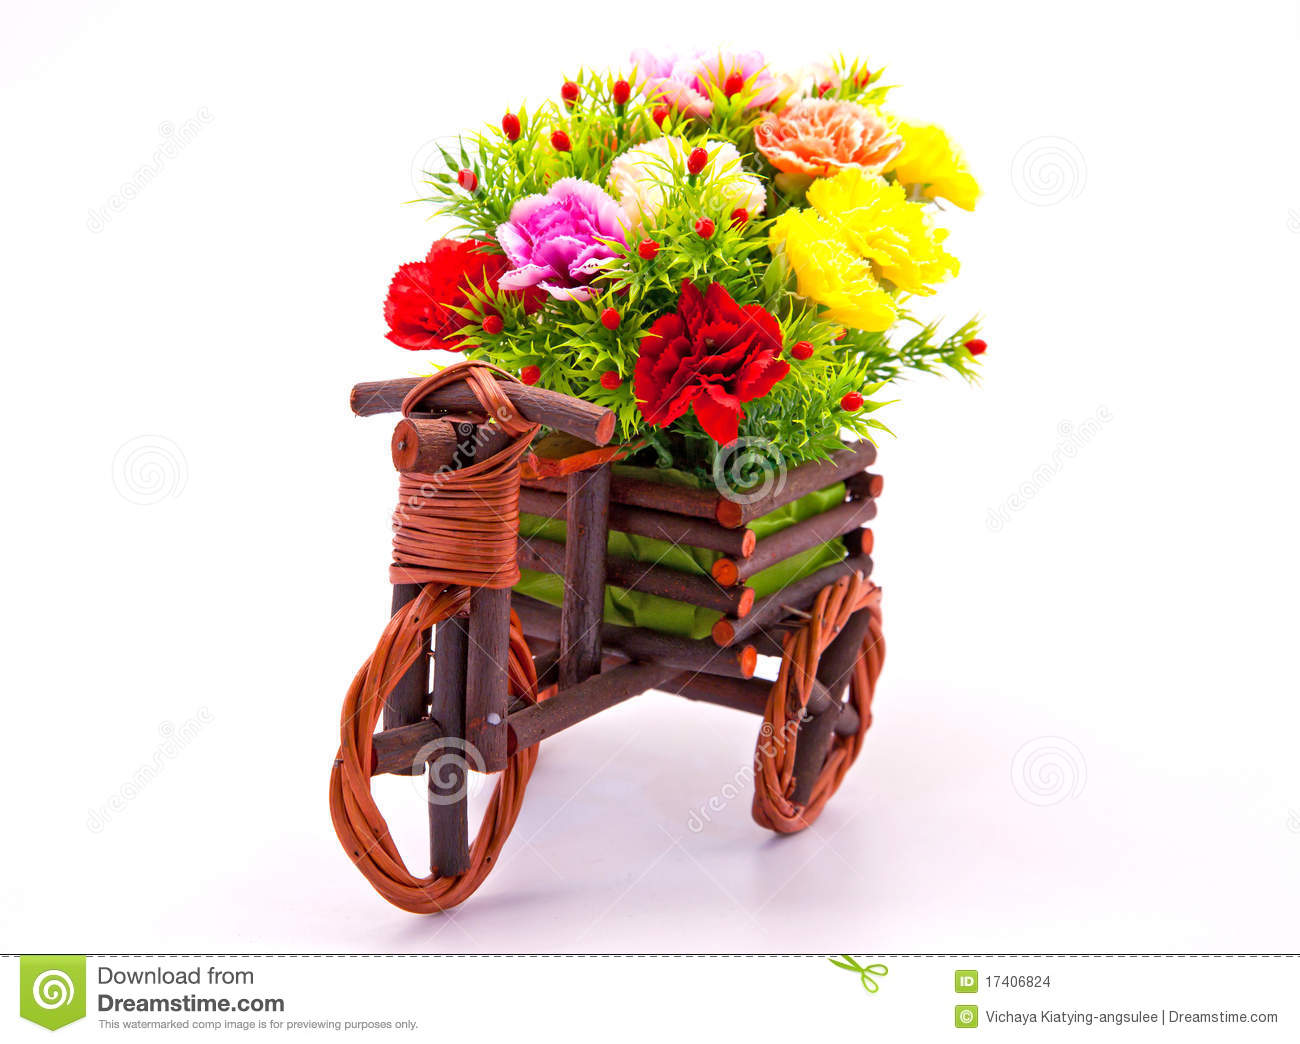 Beautiful red rose garden - Flower Bouquet In Car Wooden Basket Stock Photo Image